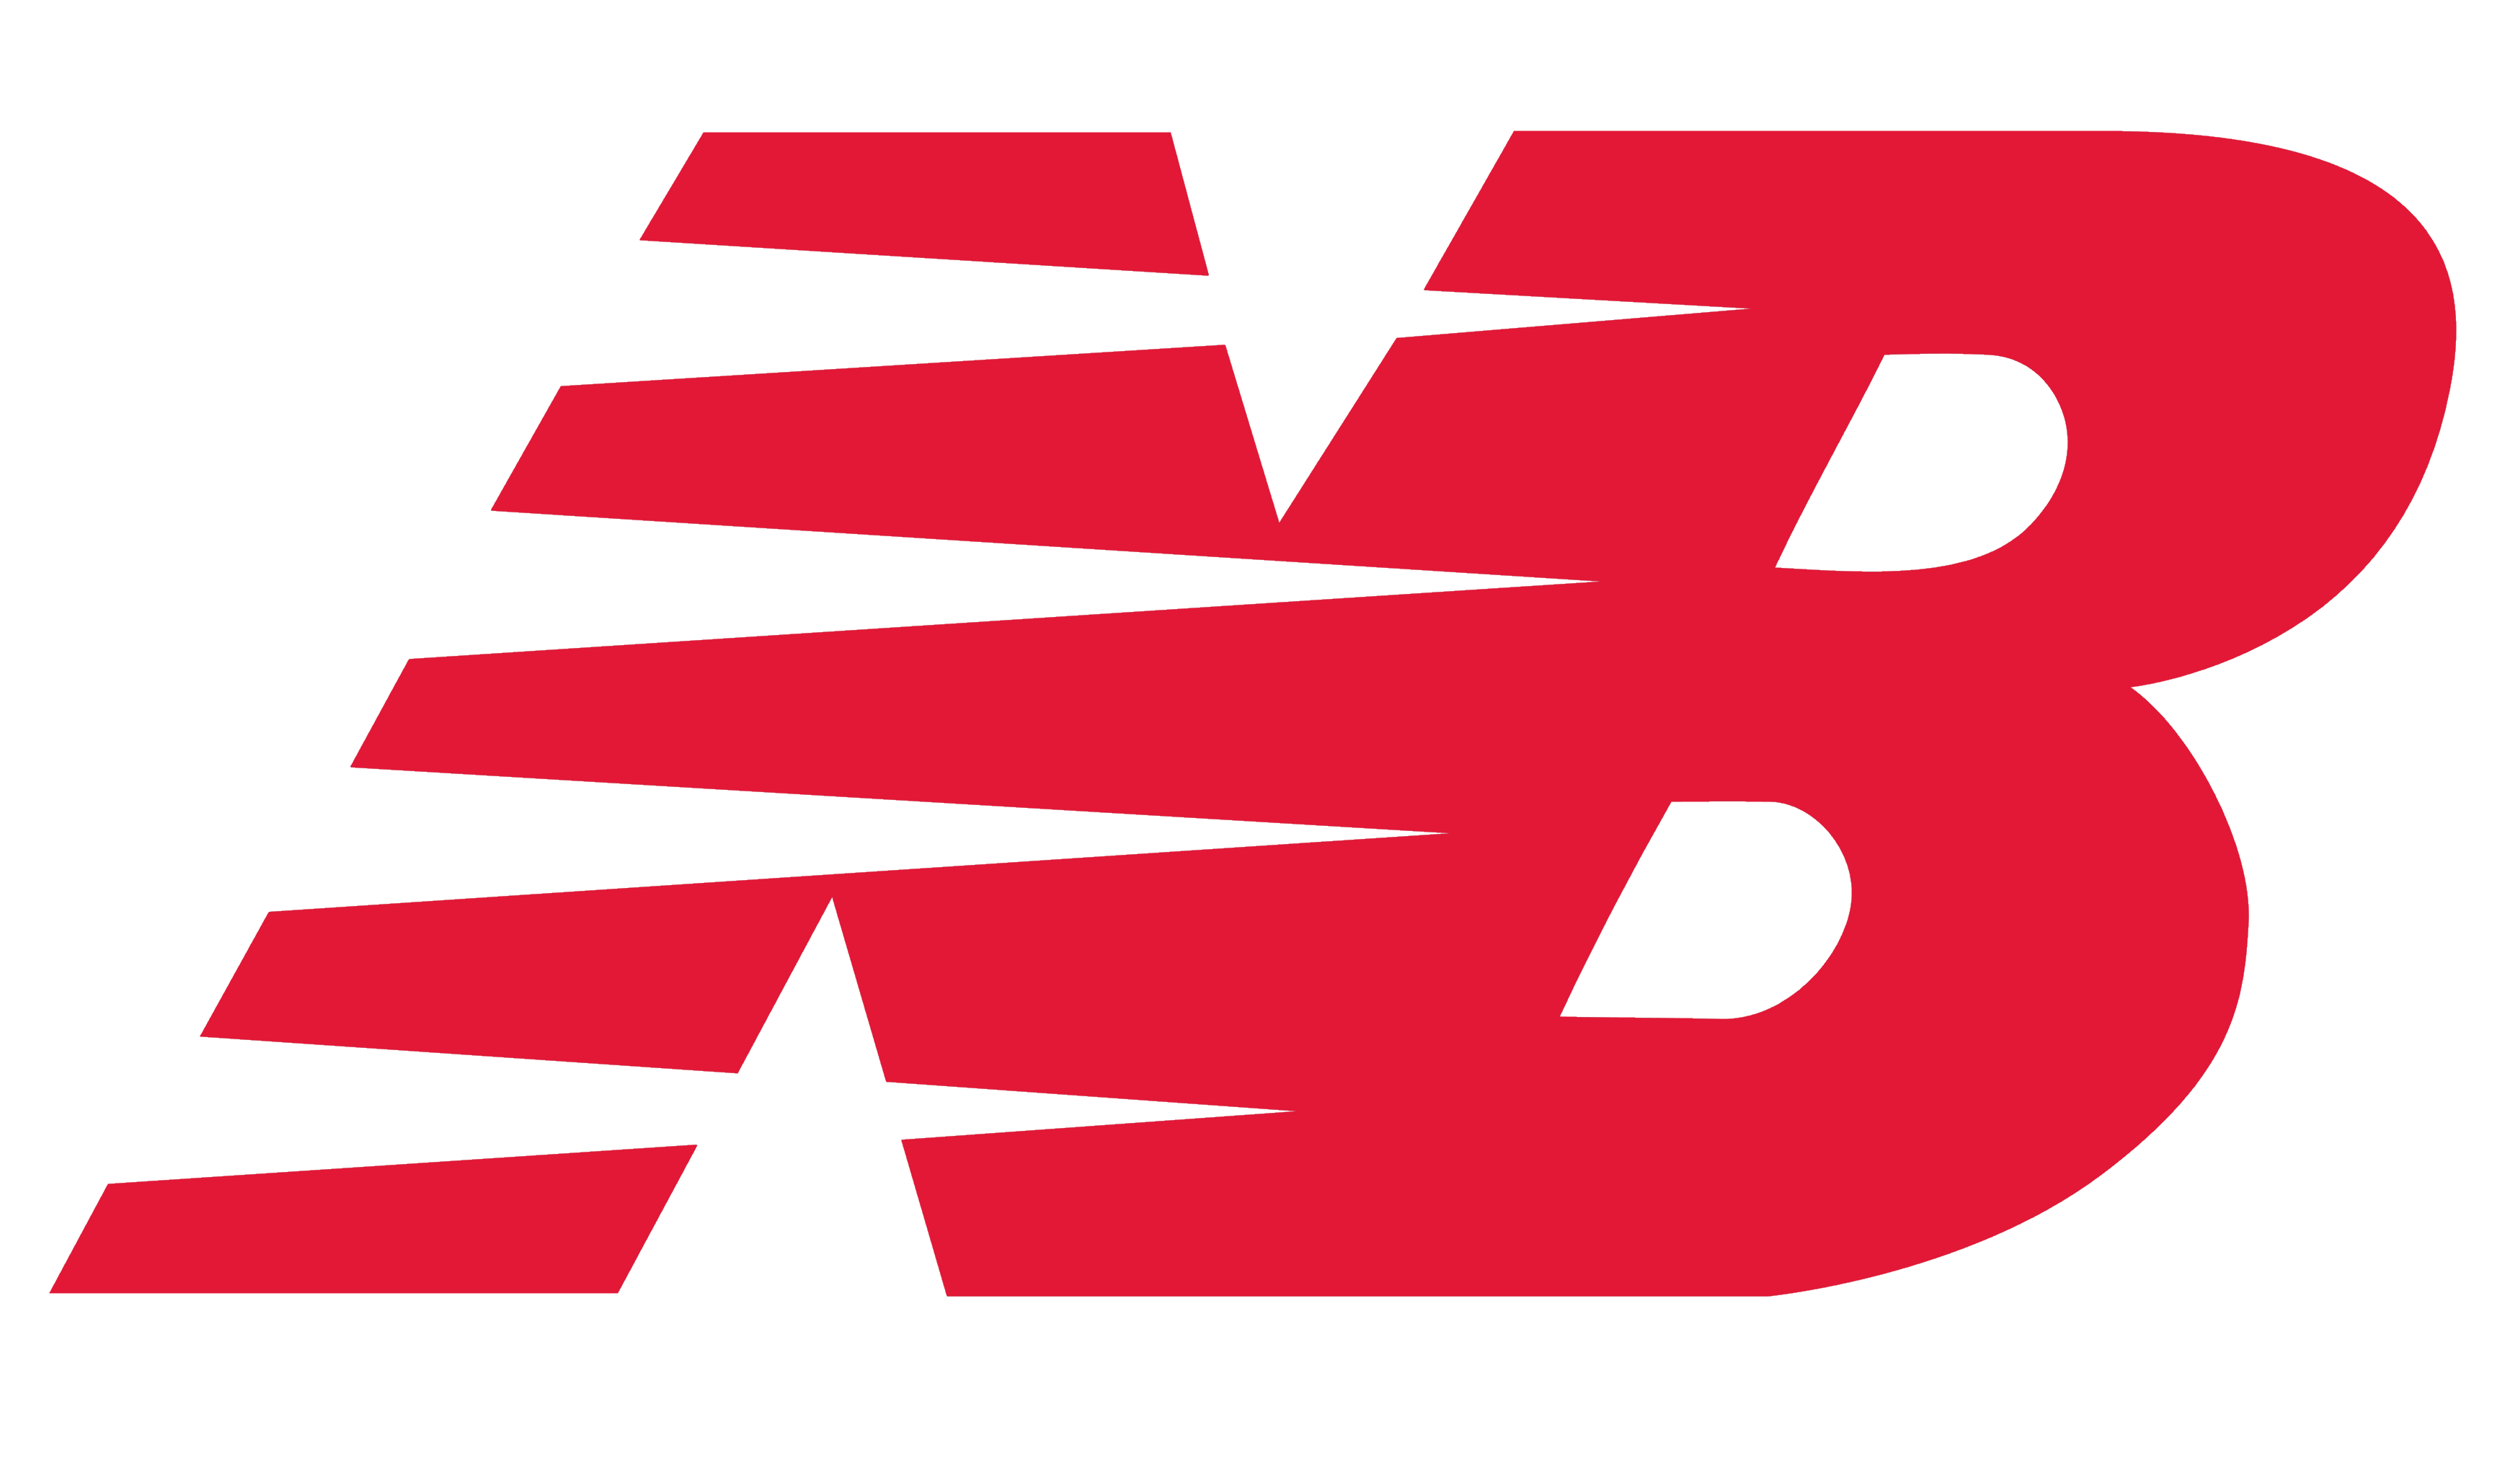 new-balance-retro-lifestyle-numerica-skateboard-shoes-thedrop-logo.png